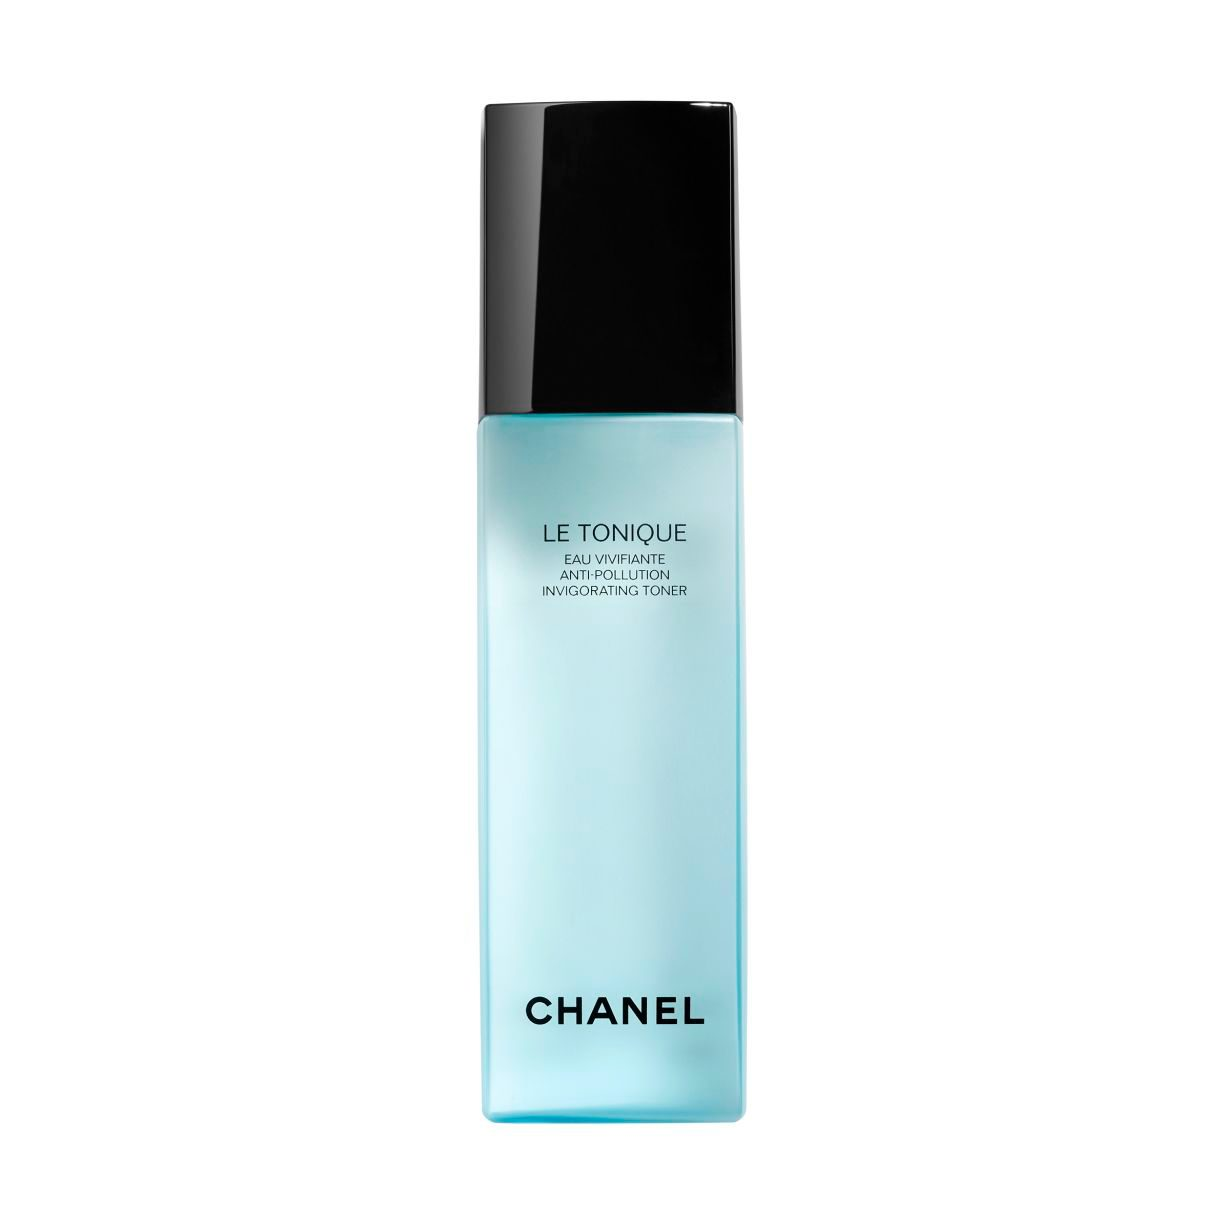 LE TONIQUE ANTI-POLLUTION INVIGORATING TONER